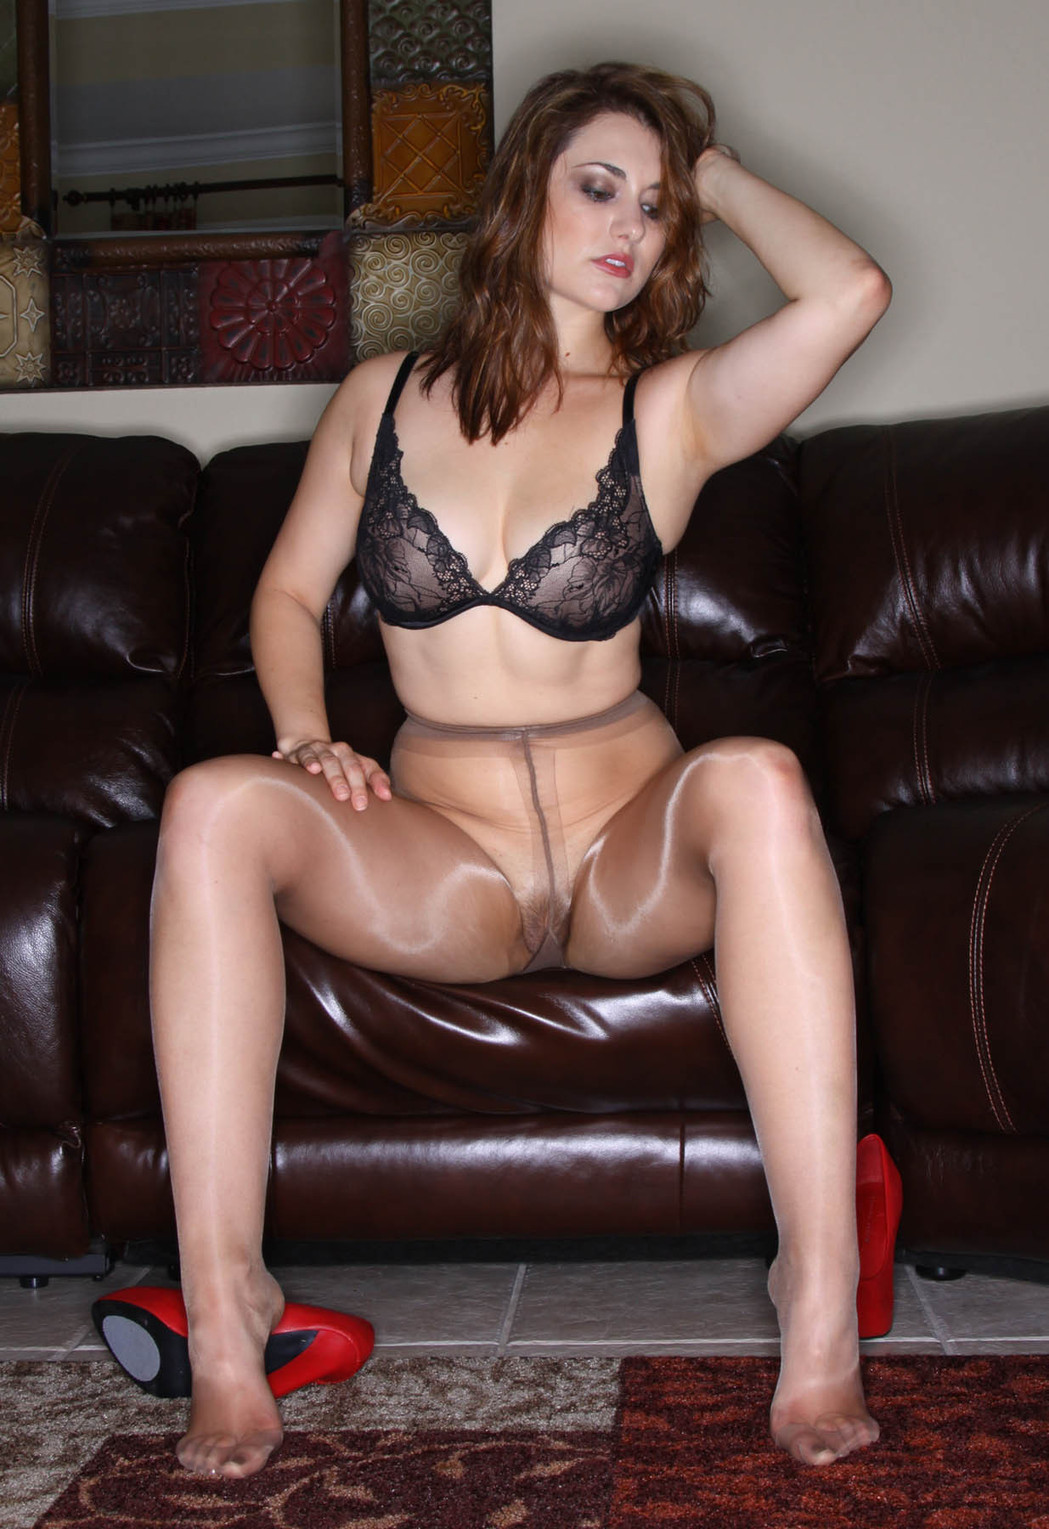 Mind Japan women in pantyhose simply